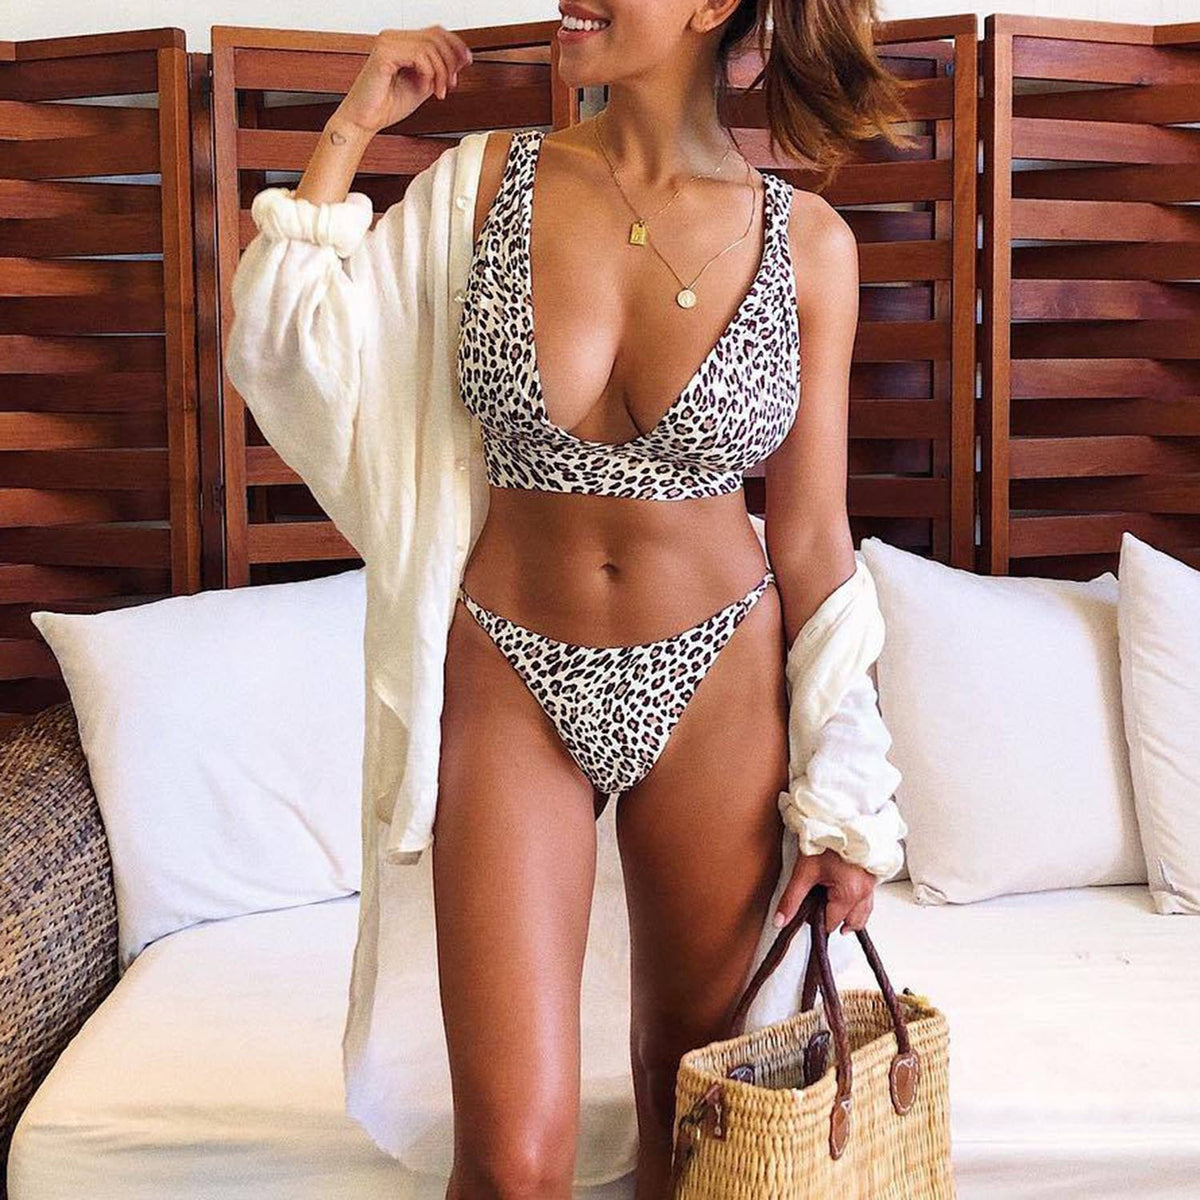 Animal Print Deep V Crop Top Bikini Swimsuit - worthtryit.com